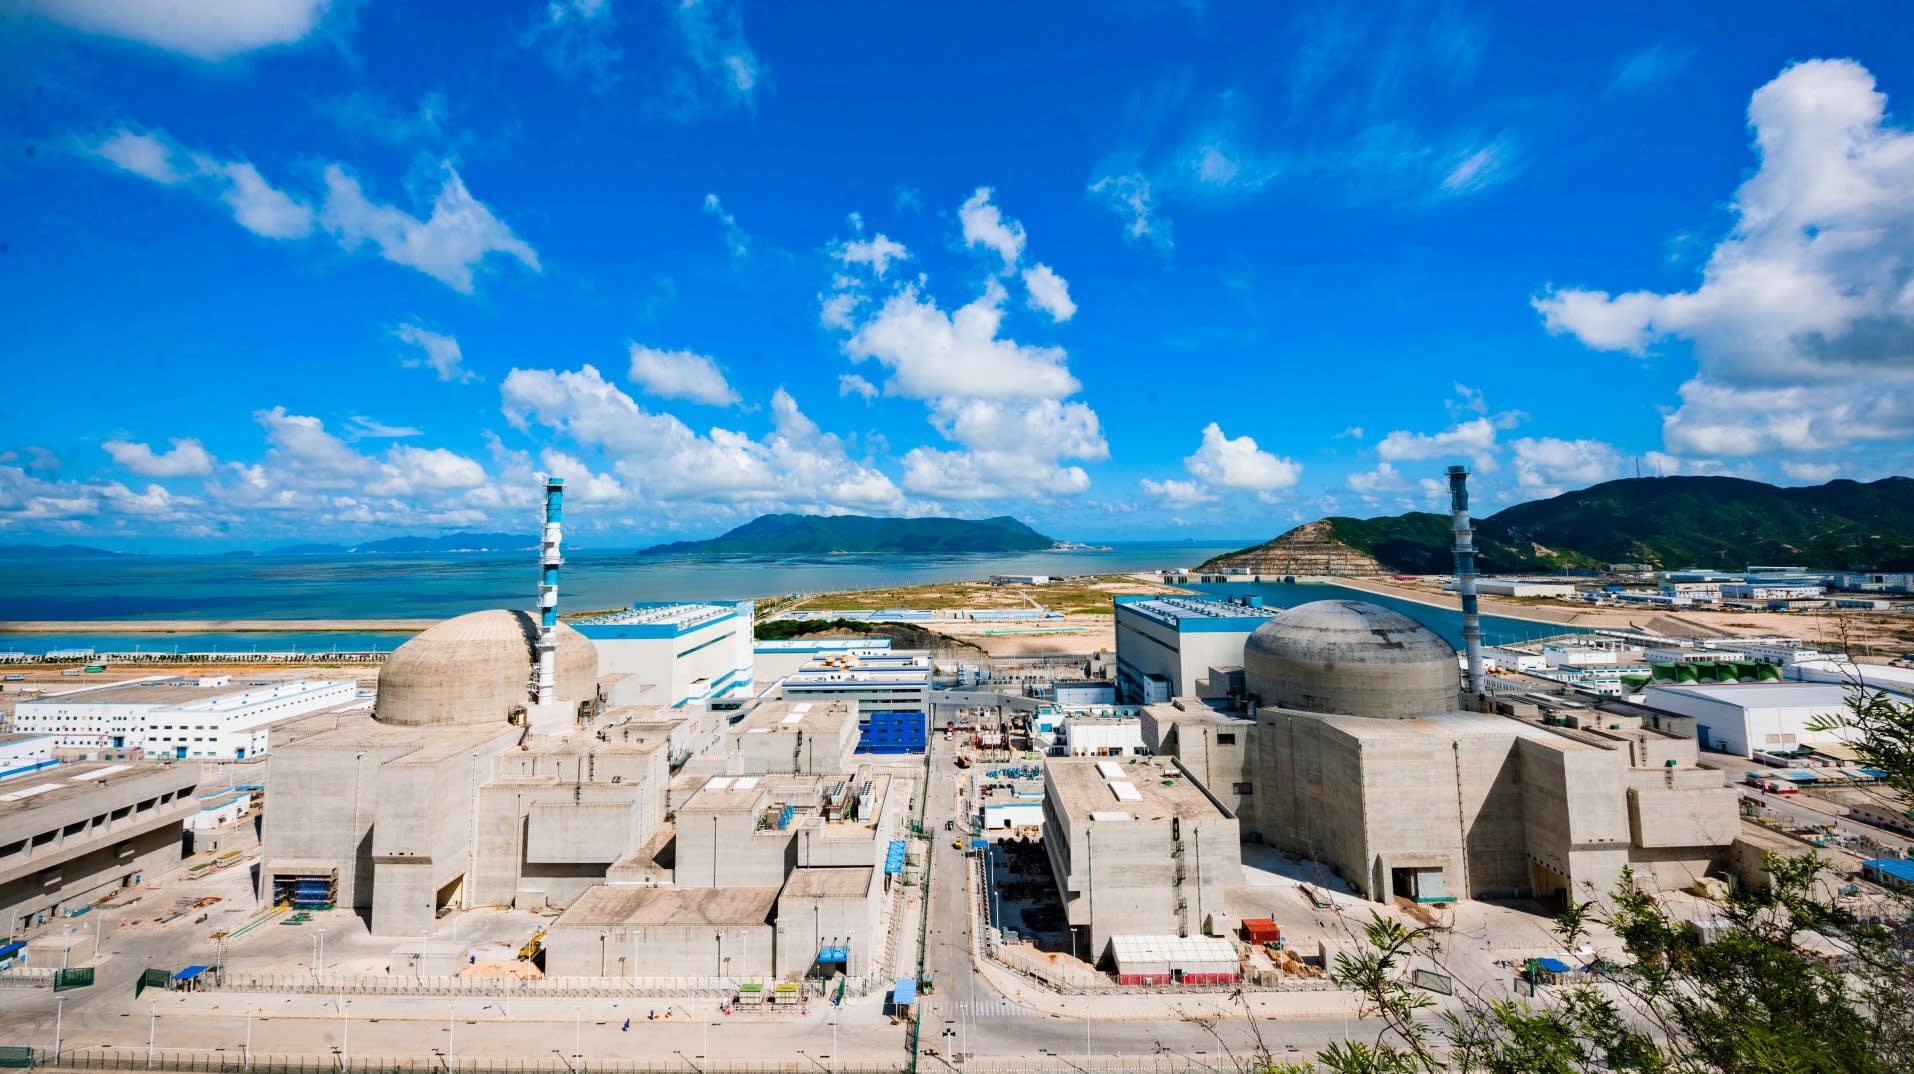 The No. 1 reactor at China General Nuclear Power's Taishan plant became the world's first operational European-style water pressure reactor on Friday.